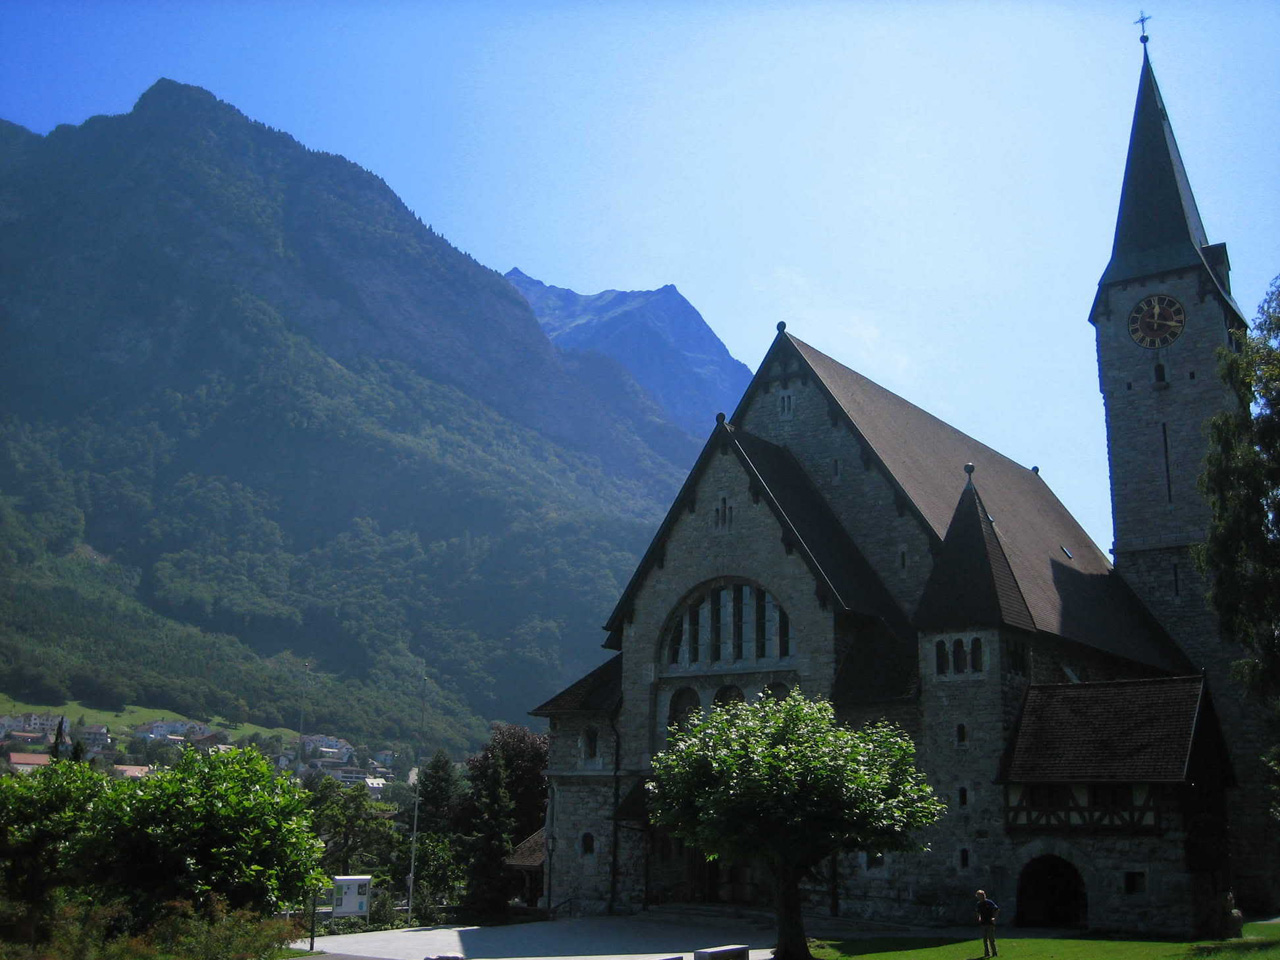 Holiday Rental Opportunities &#8211; Rent the Country of Liechtenstein for $70,000 a Night